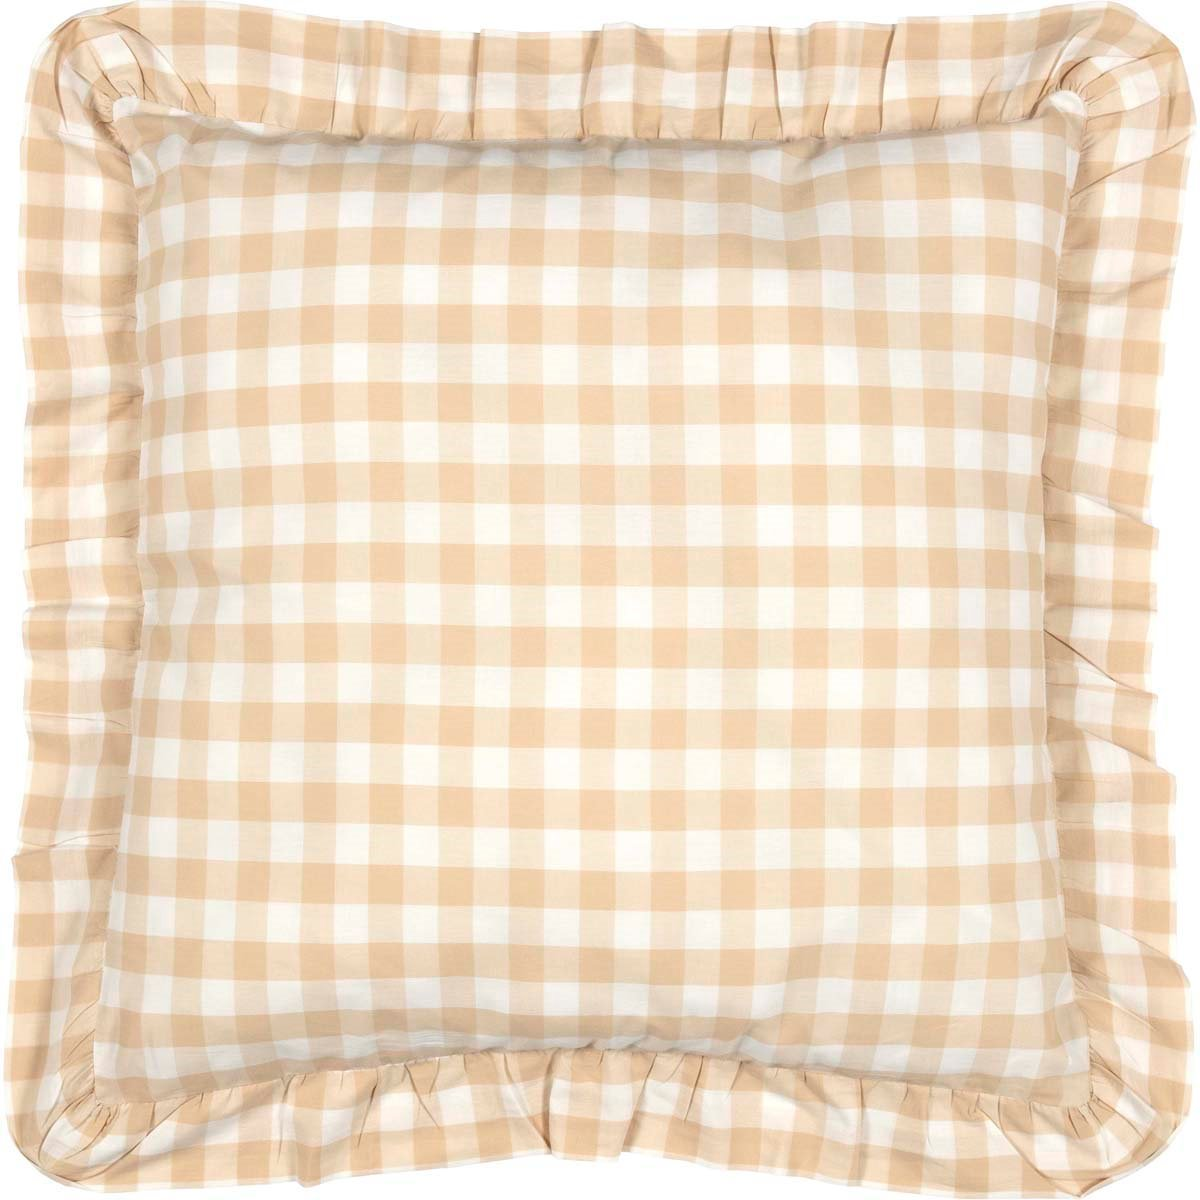 Annie Buffalo Tan Check Fabric Euro Sham 26x26 April